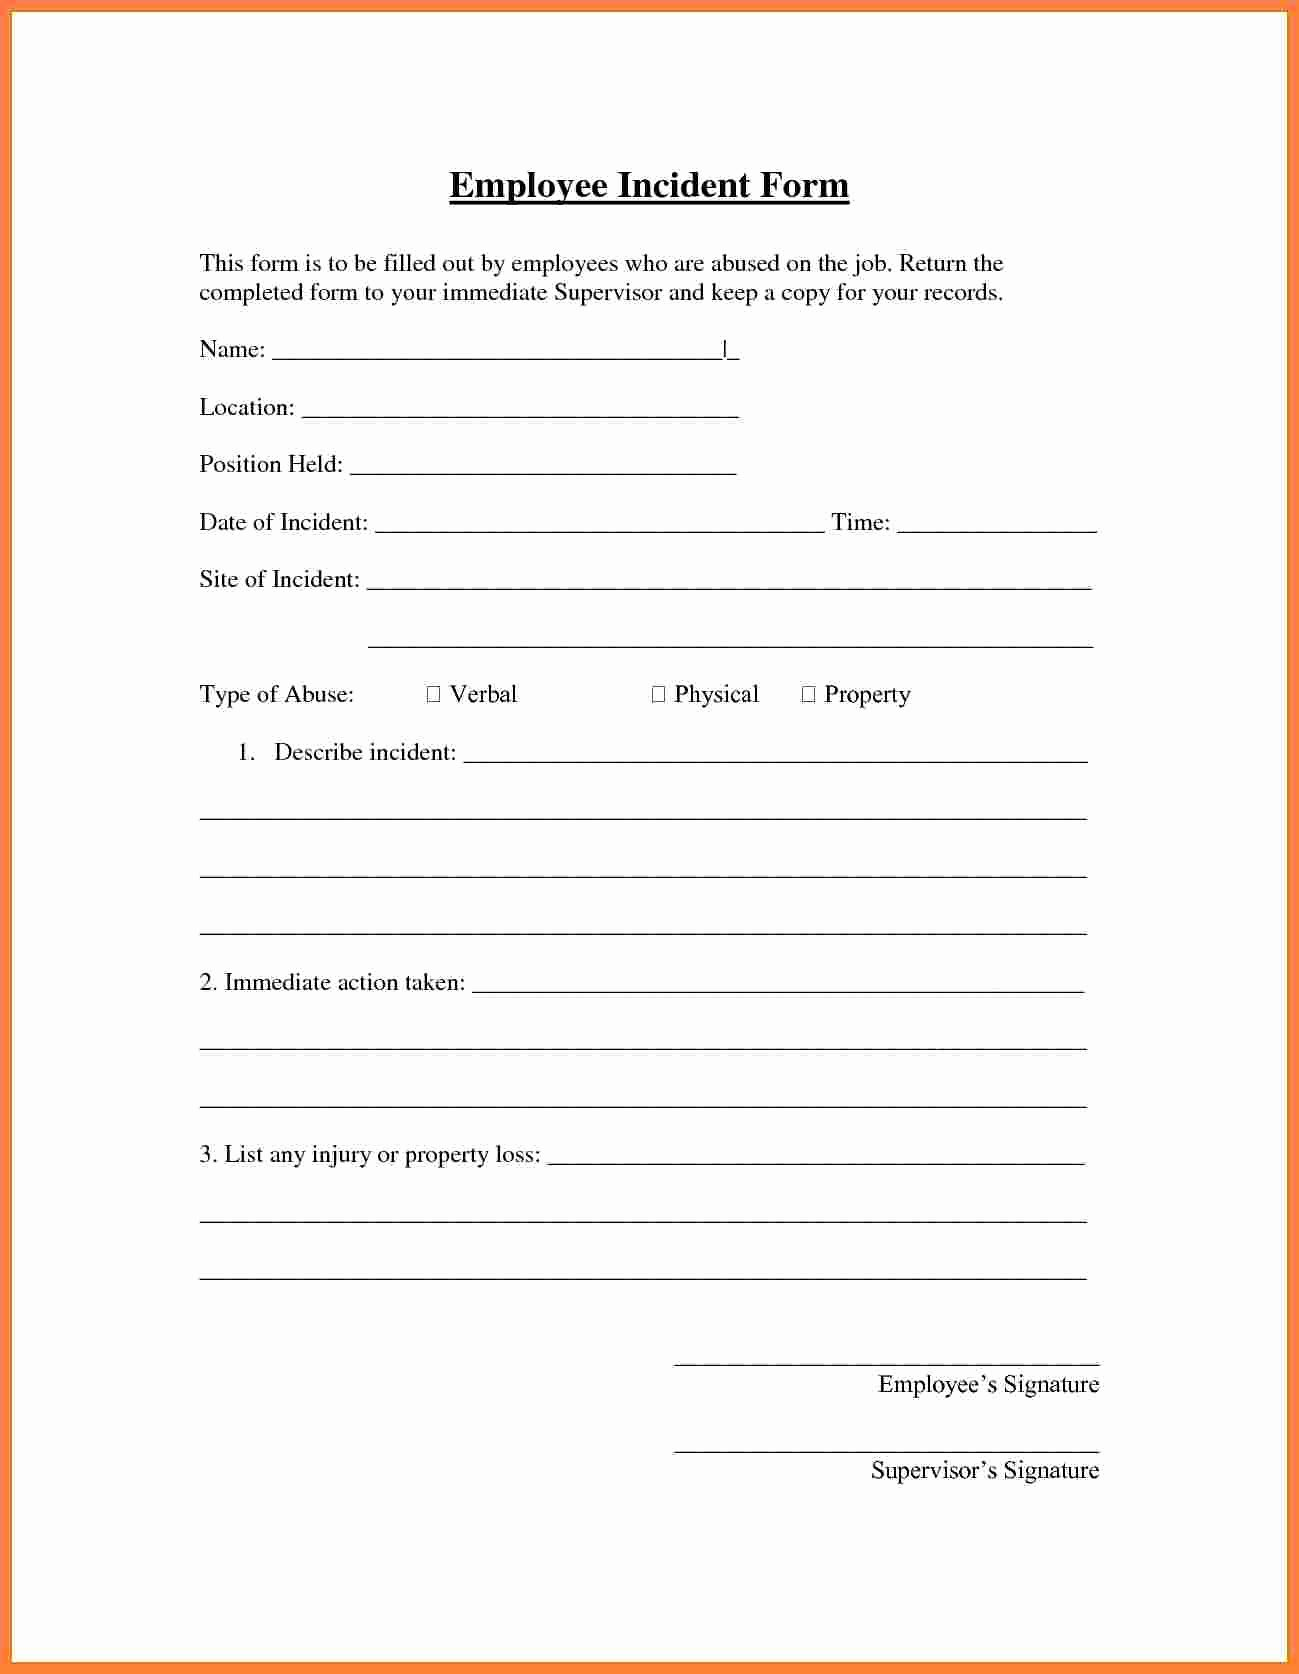 Accident Incident Reporting form Template Elegant Employee Injury Report